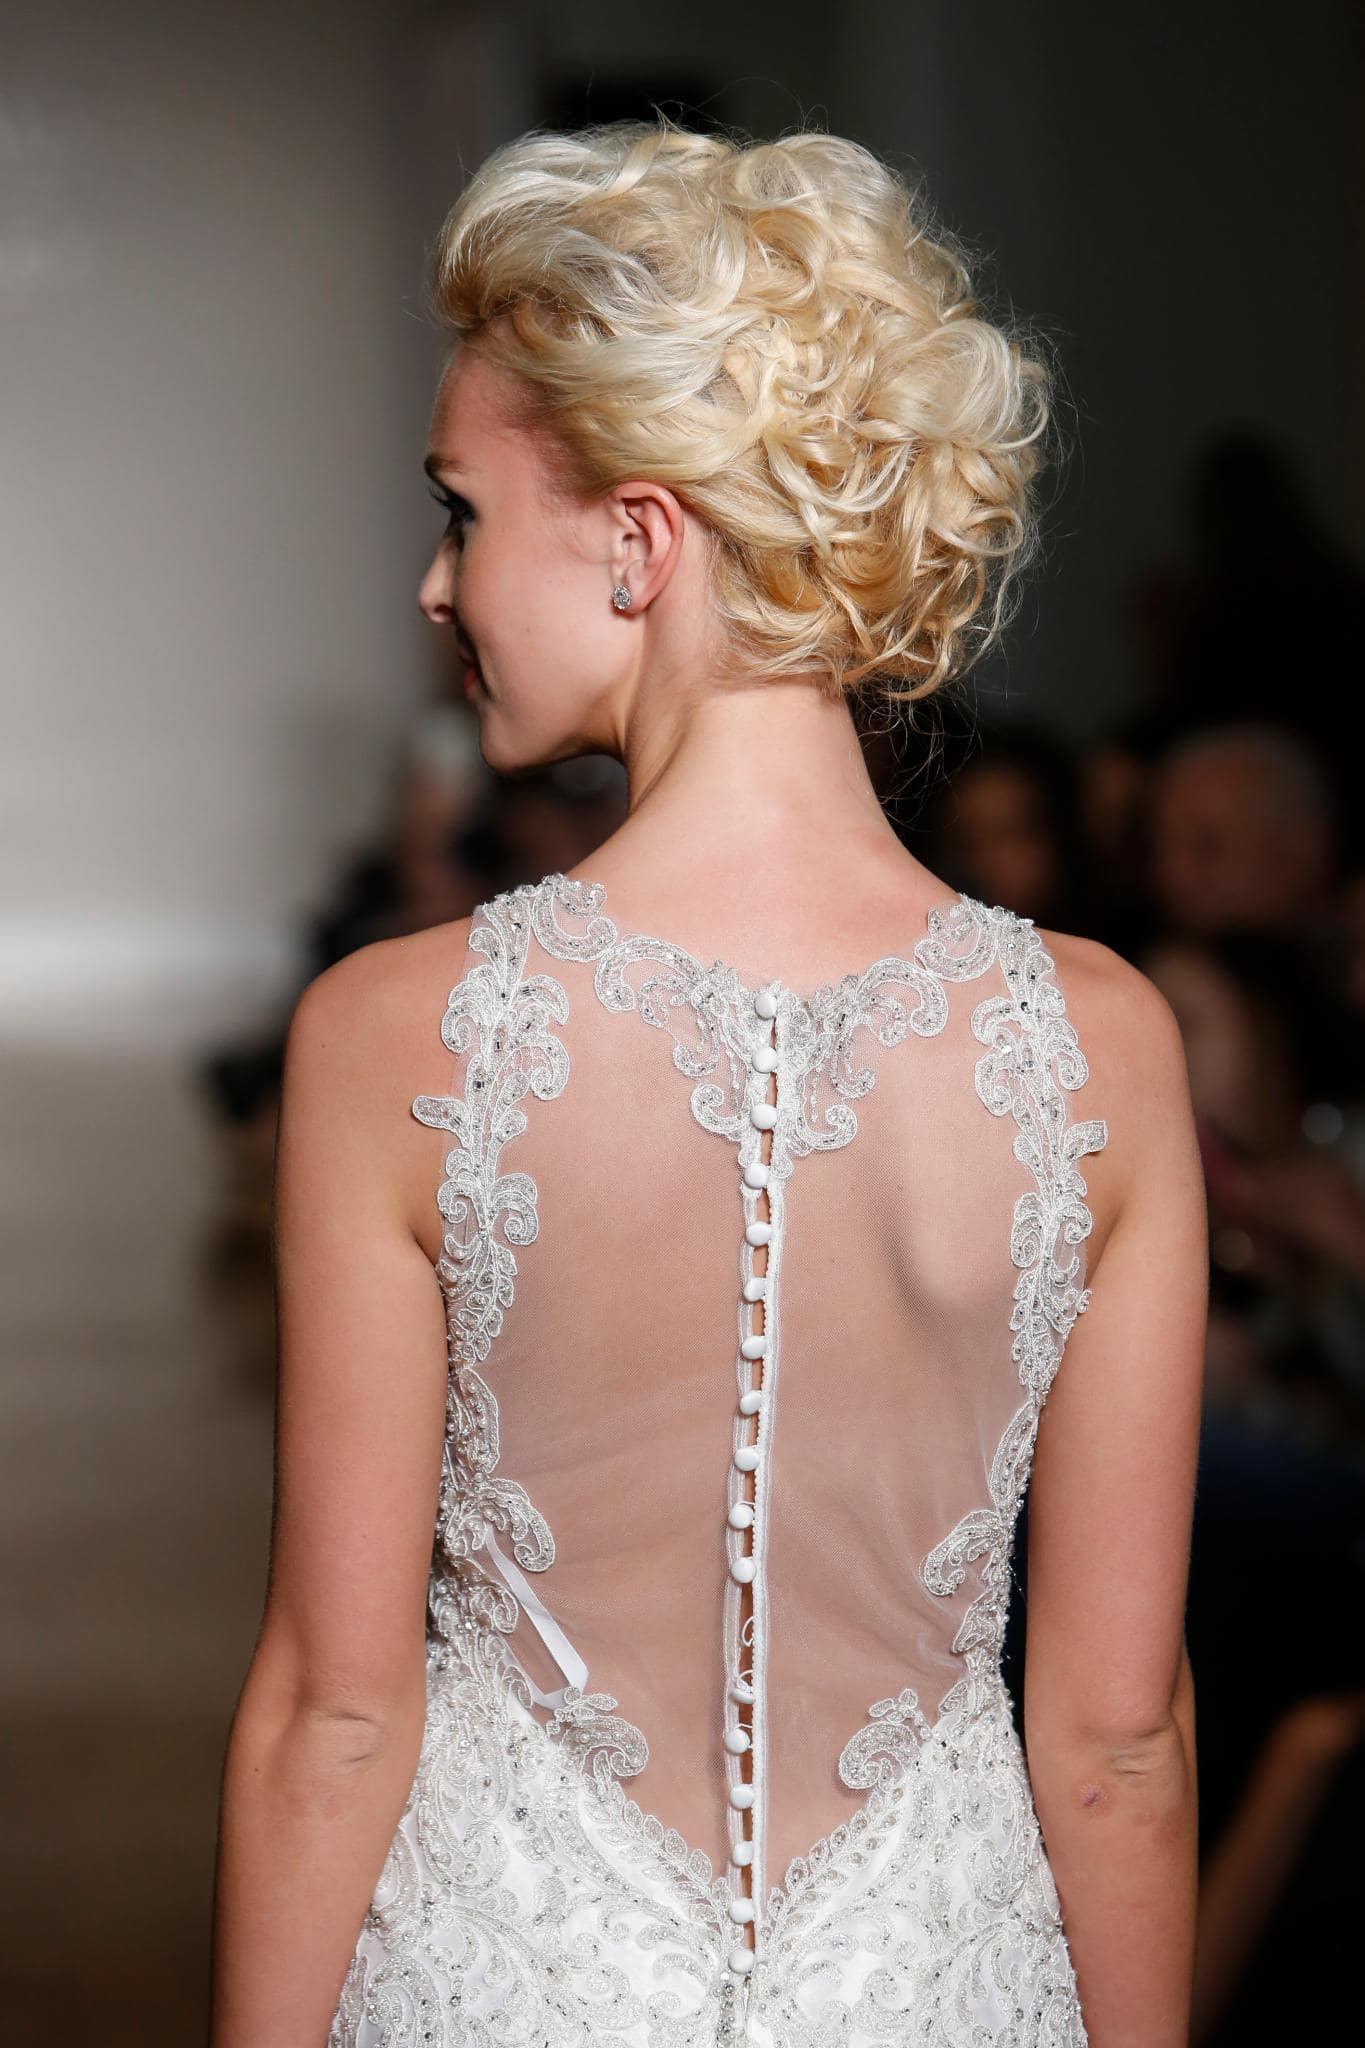 Bridal Hairstyles and Hair Ideas to Inspire Your Look on ...